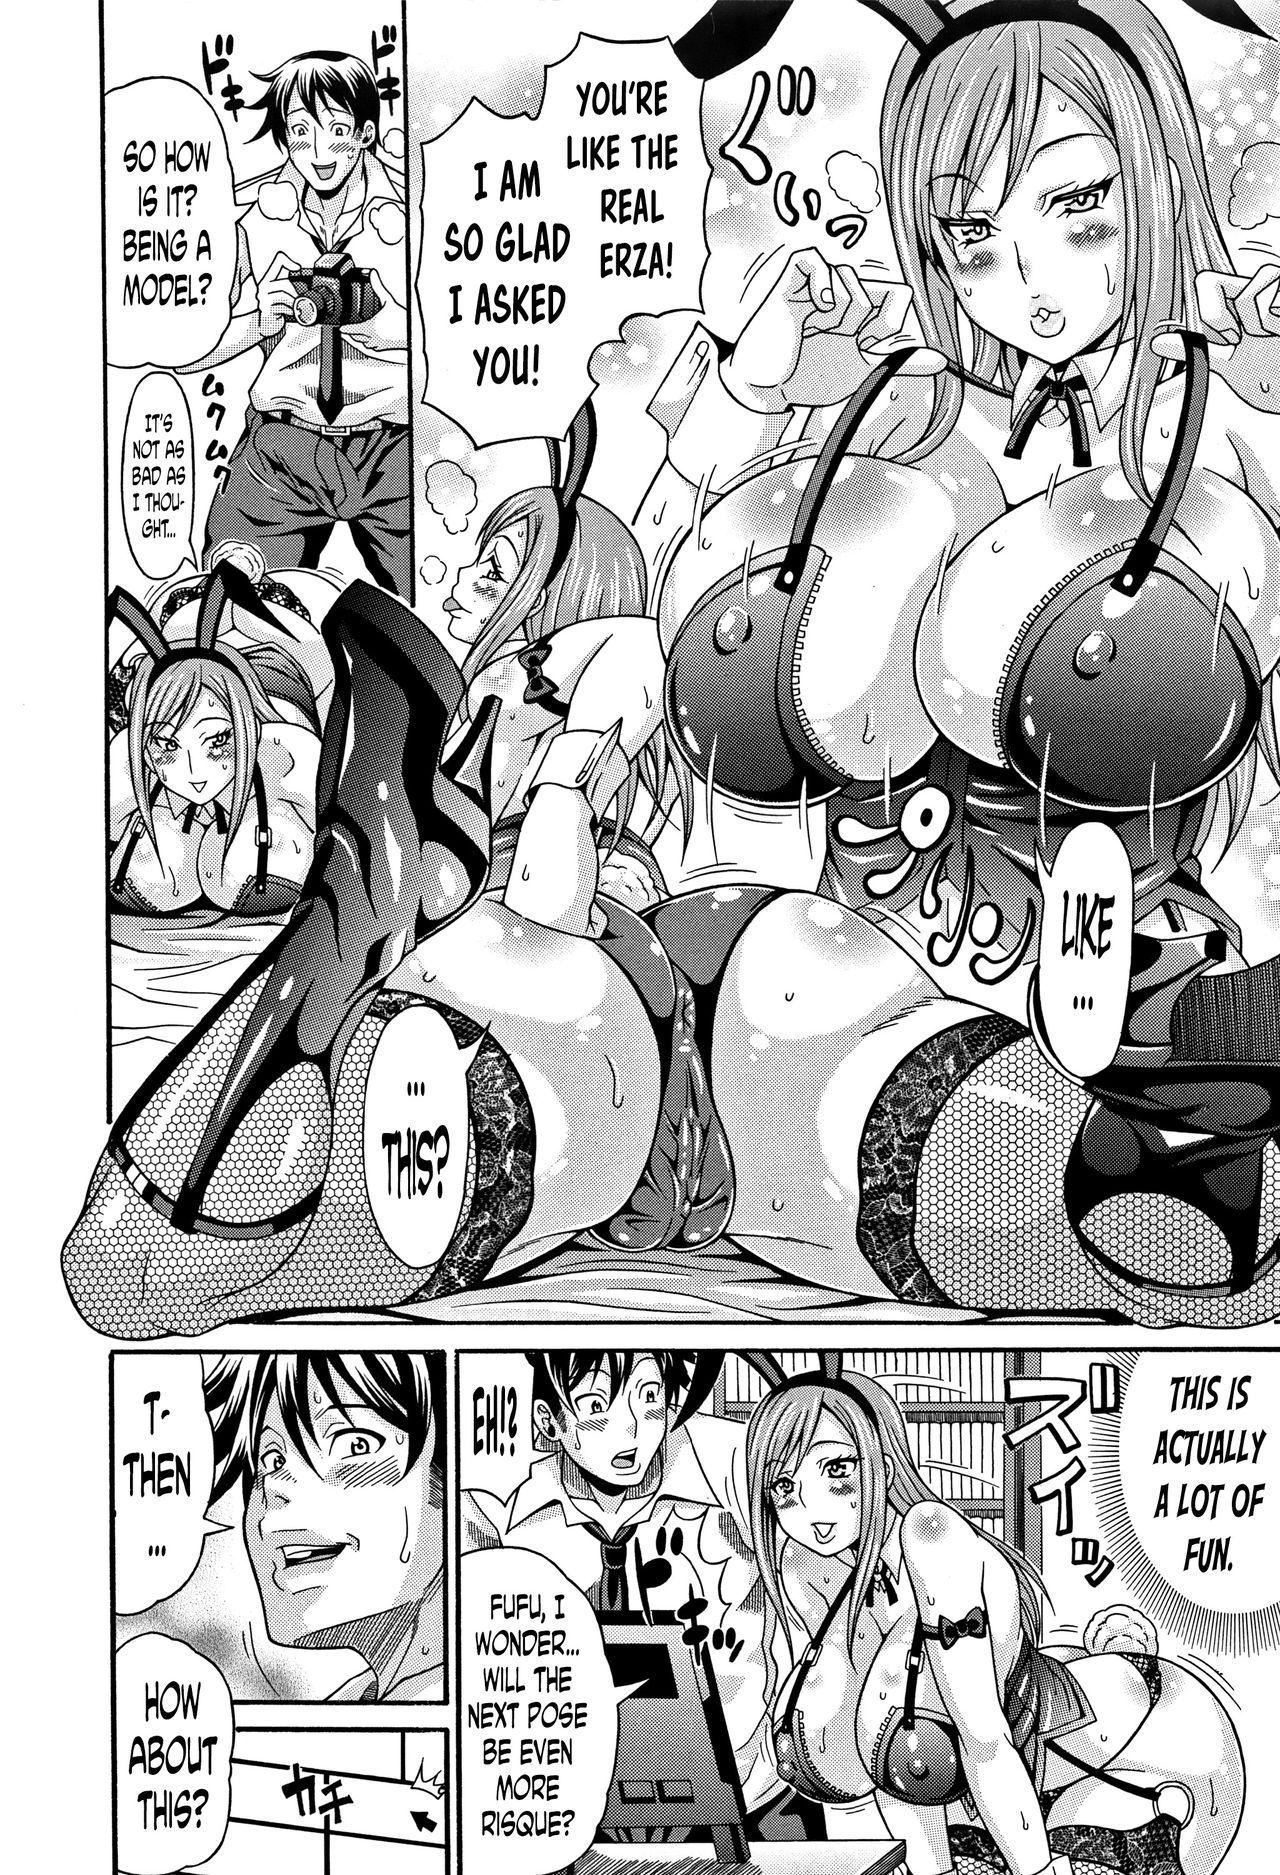 [Andou Hiroyuki] Mamire Chichi - Sticky Tits Feel Hot All Over. Ch.1-7 [English] [doujin-moe.us] 24